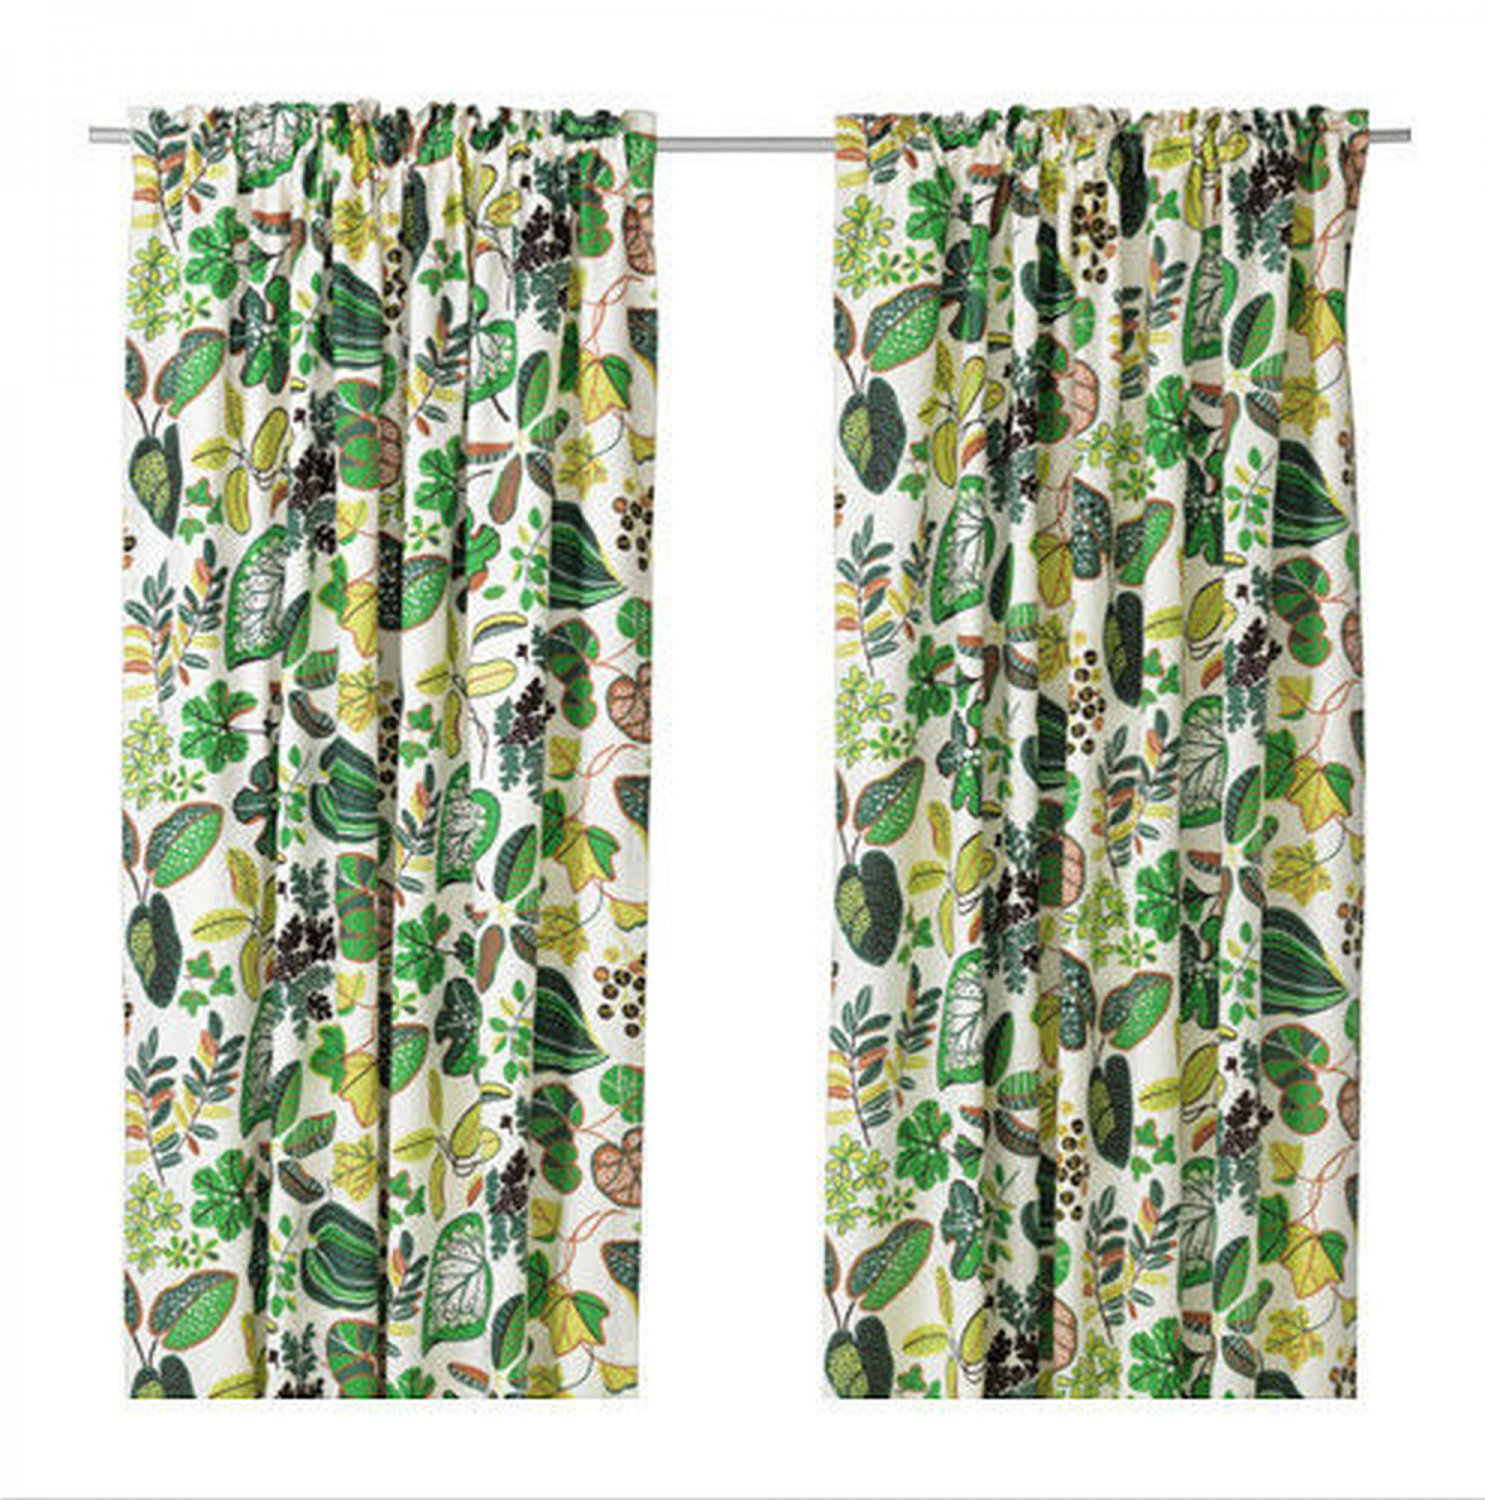 Ikea syssan curtains drapes green leaf modern retro linen for Green modern curtains